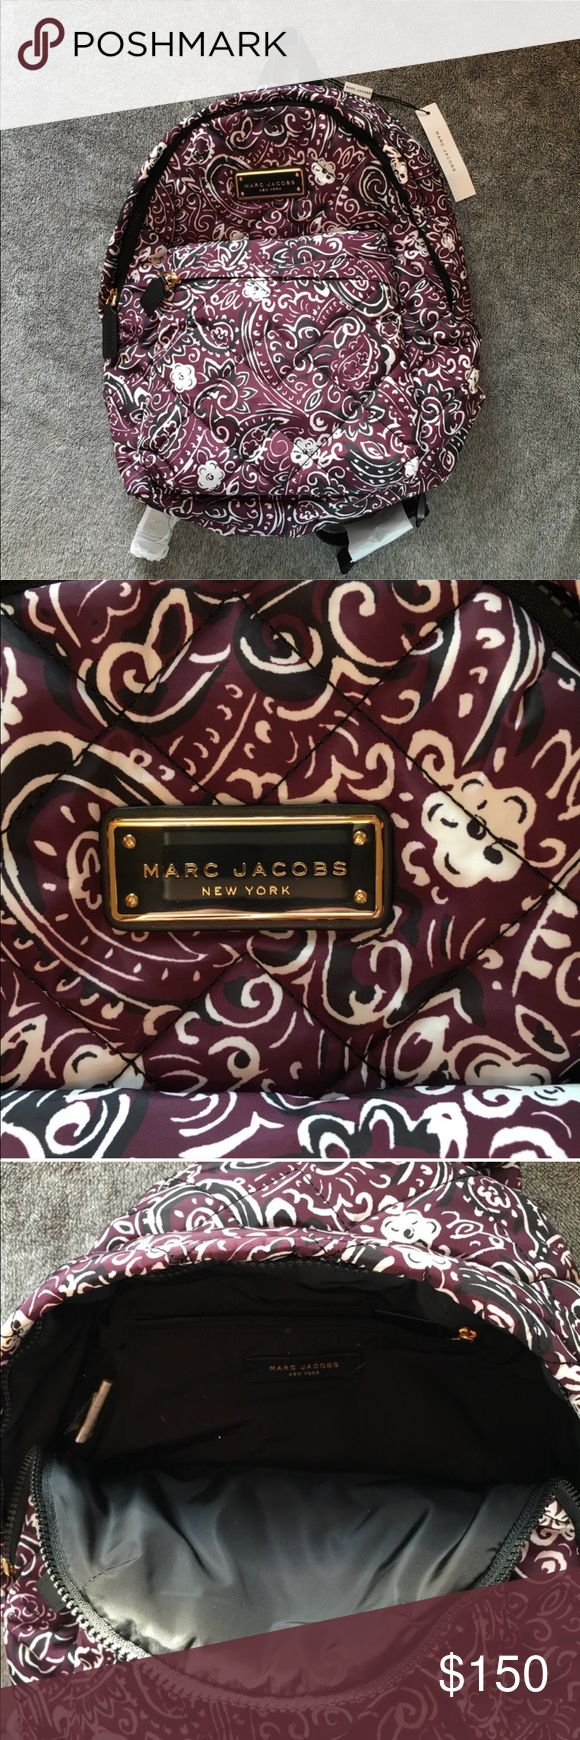 """Marc Jacobs NWT Backpack • Marc Jacobs New York • New With Tags • Originally $350 • Includes Authentication Card • Color is """"Aubergine Multi"""" • Has Adjustable Straps • 100% Polyester (Easy to Clean 😉) • Approx. 16""""H x 13""""W x 7""""D Marc Jacobs Bags Backpacks"""